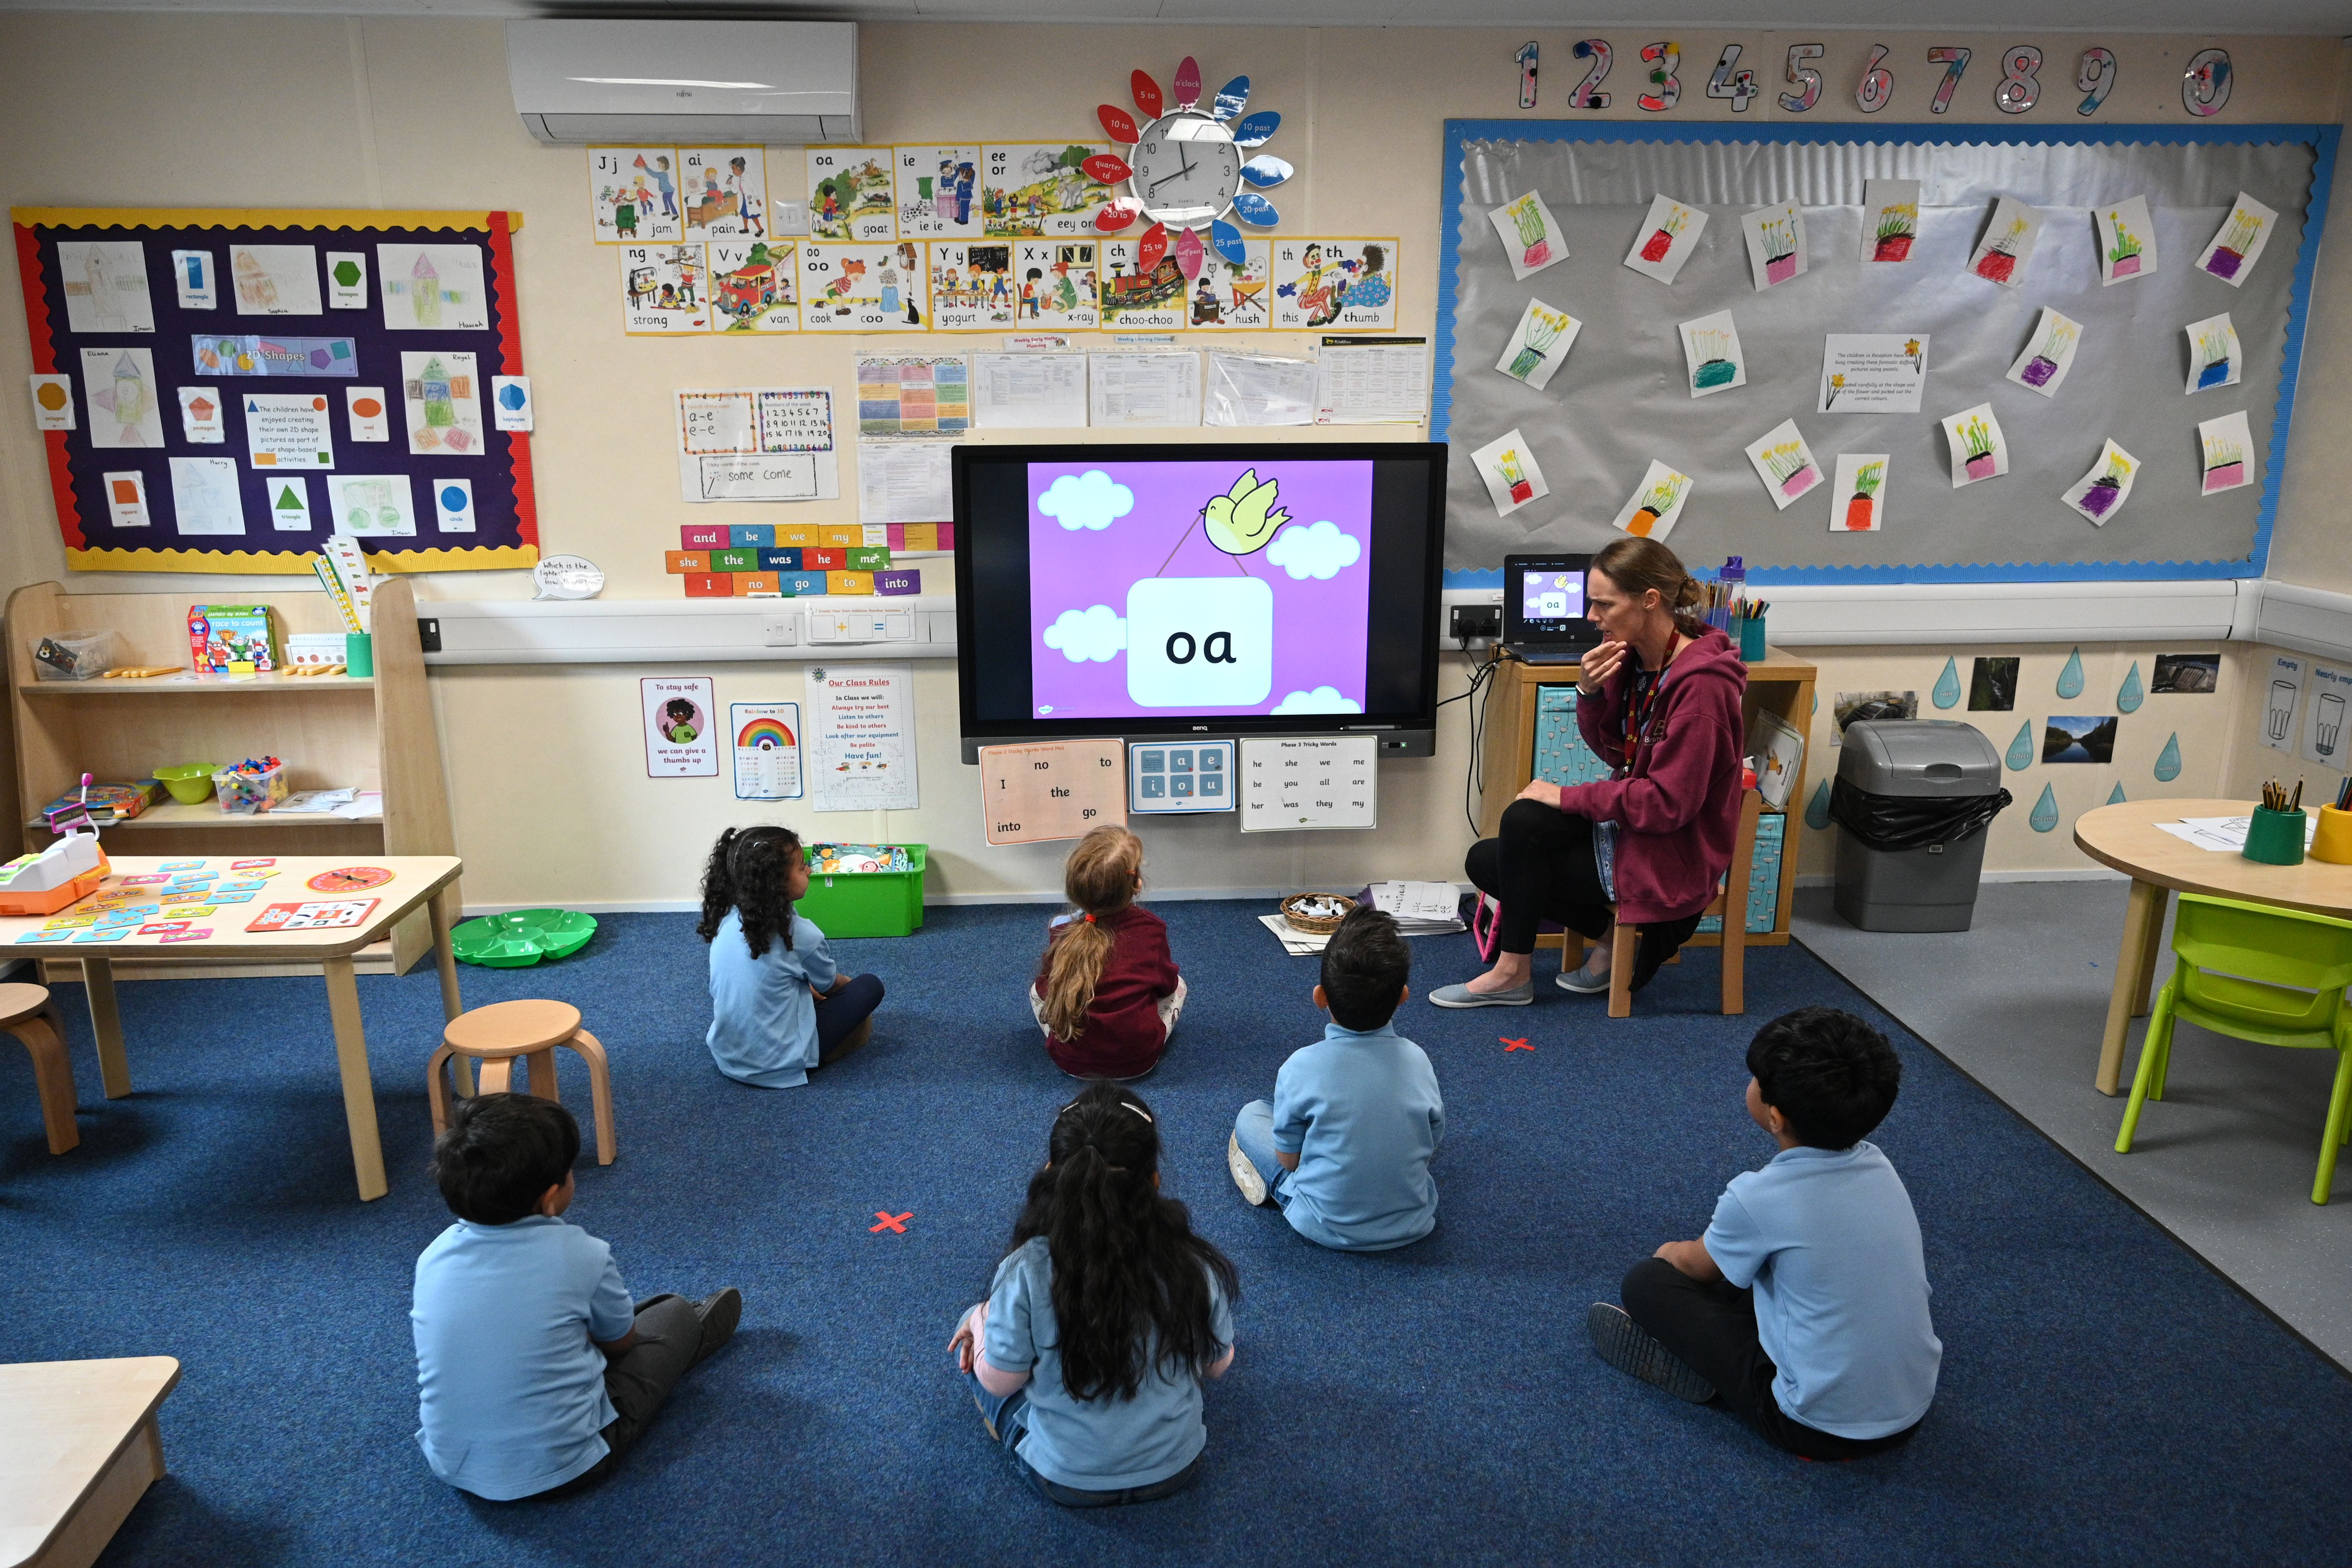 In a reception classroom, children sit apart from each other on a carpet where crosses have been marked out for them to sit on, in a teaching environment safe from Coronavirus for pupils and teachers at Brambles Primary Academy in Huddersfield, northern England on June 4, 2020, as the Government's recommencing of education for Reception and Years 1 and 6 classes gets underway. - Primary schools reopened the week commencing June 1, welcoming back children in Reception, year 1 and year 6 age groups, alongside priority groups. (Photo by Oli SCARFF / AFP) (Photo by OLI SCARFF/AFP via Getty Images)